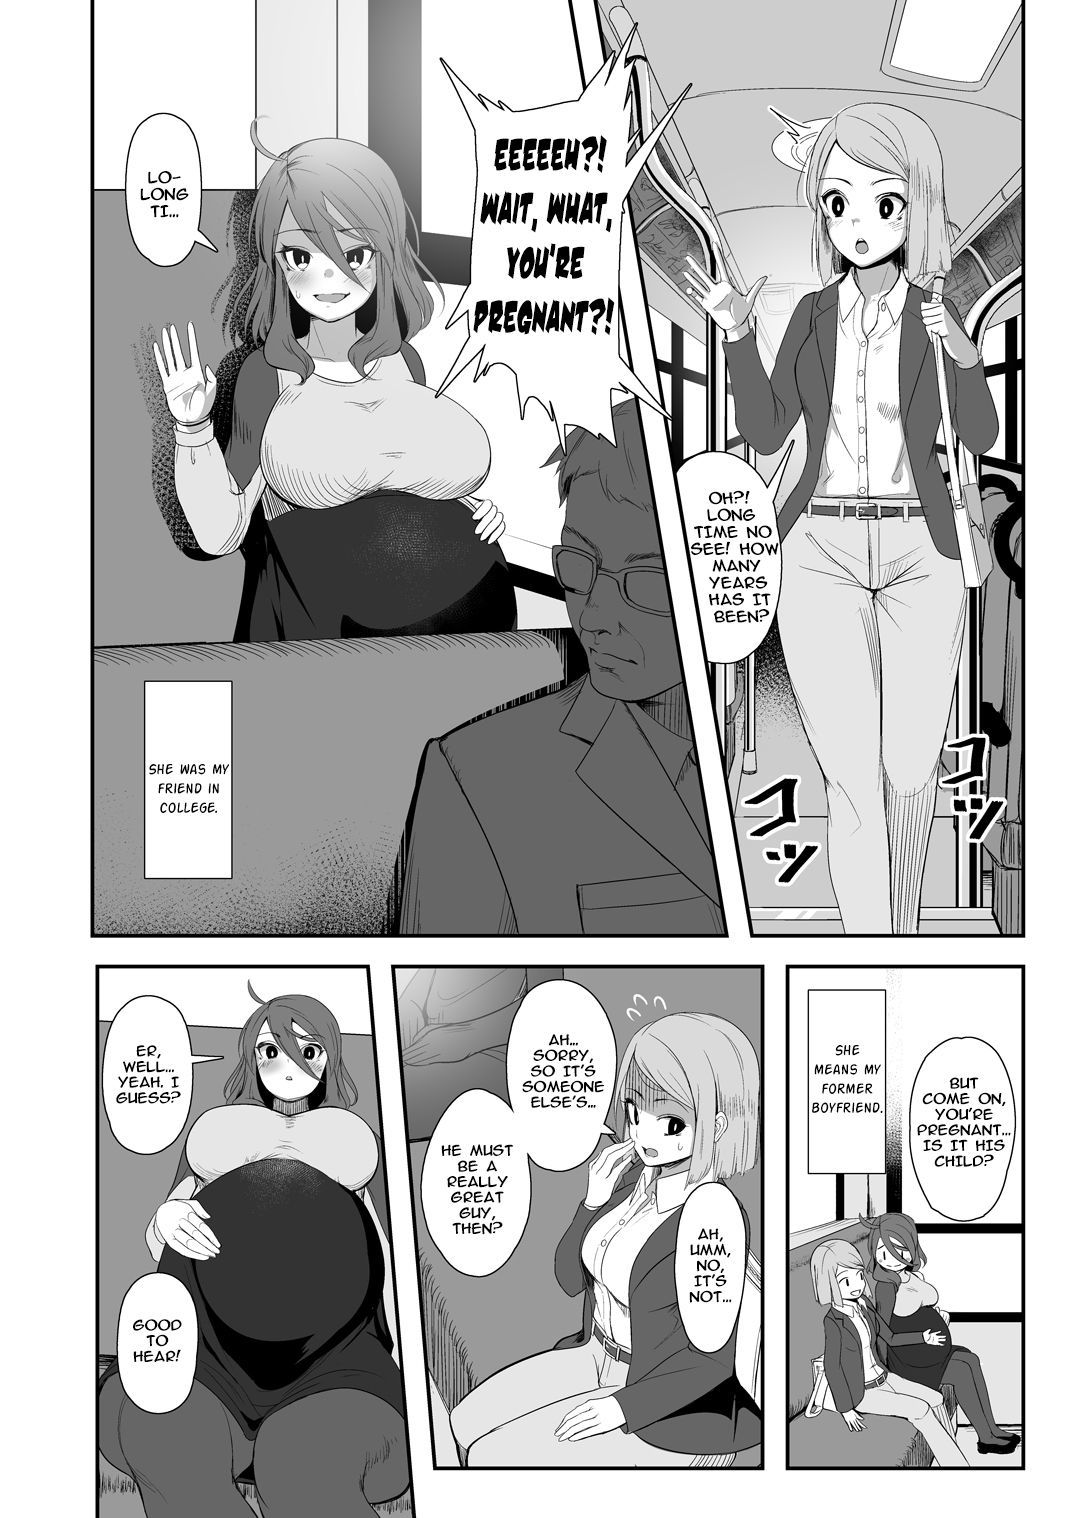 Igyo no Kimi to | A Tentacled Romance Ch. 1-2 page 22